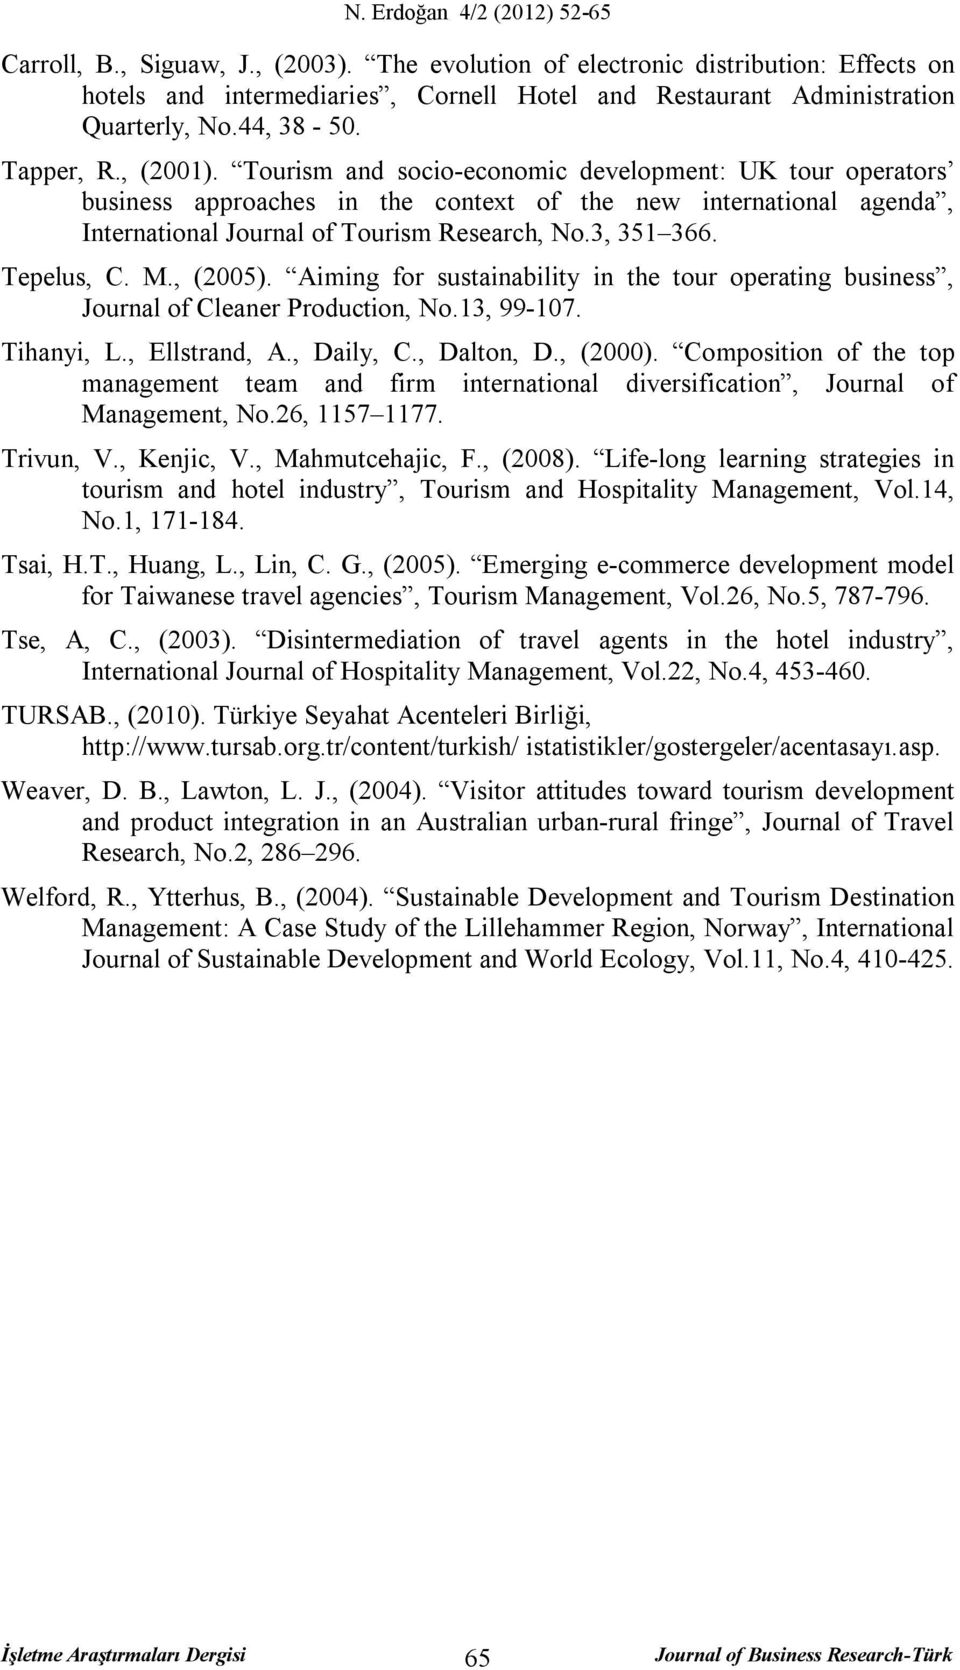 Tepelus, C. M., (2005). Aiming for sustainability in the tour operating business, Journal of Cleaner Production, No.13, 99-107. Tihanyi, L., Ellstrand, A., Daily, C., Dalton, D., (2000).